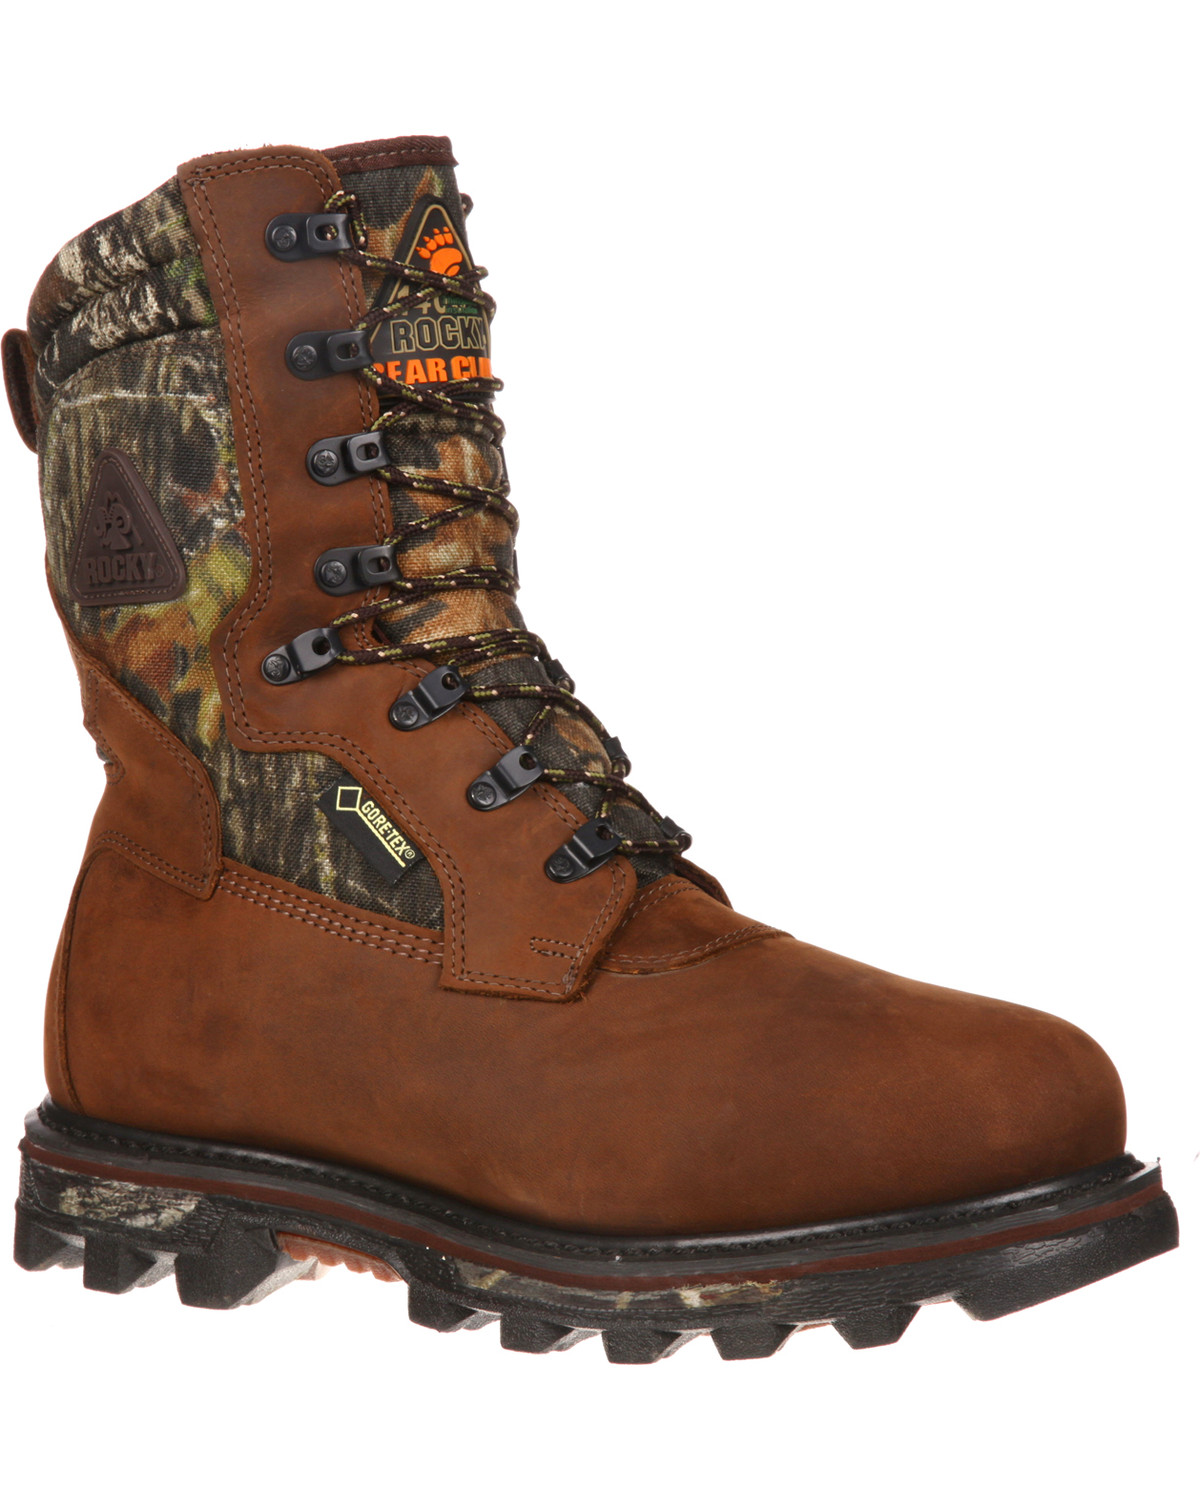 low priced 5ddf0 5a943 Rocky Men's Arctic Bear Claw 3D 10